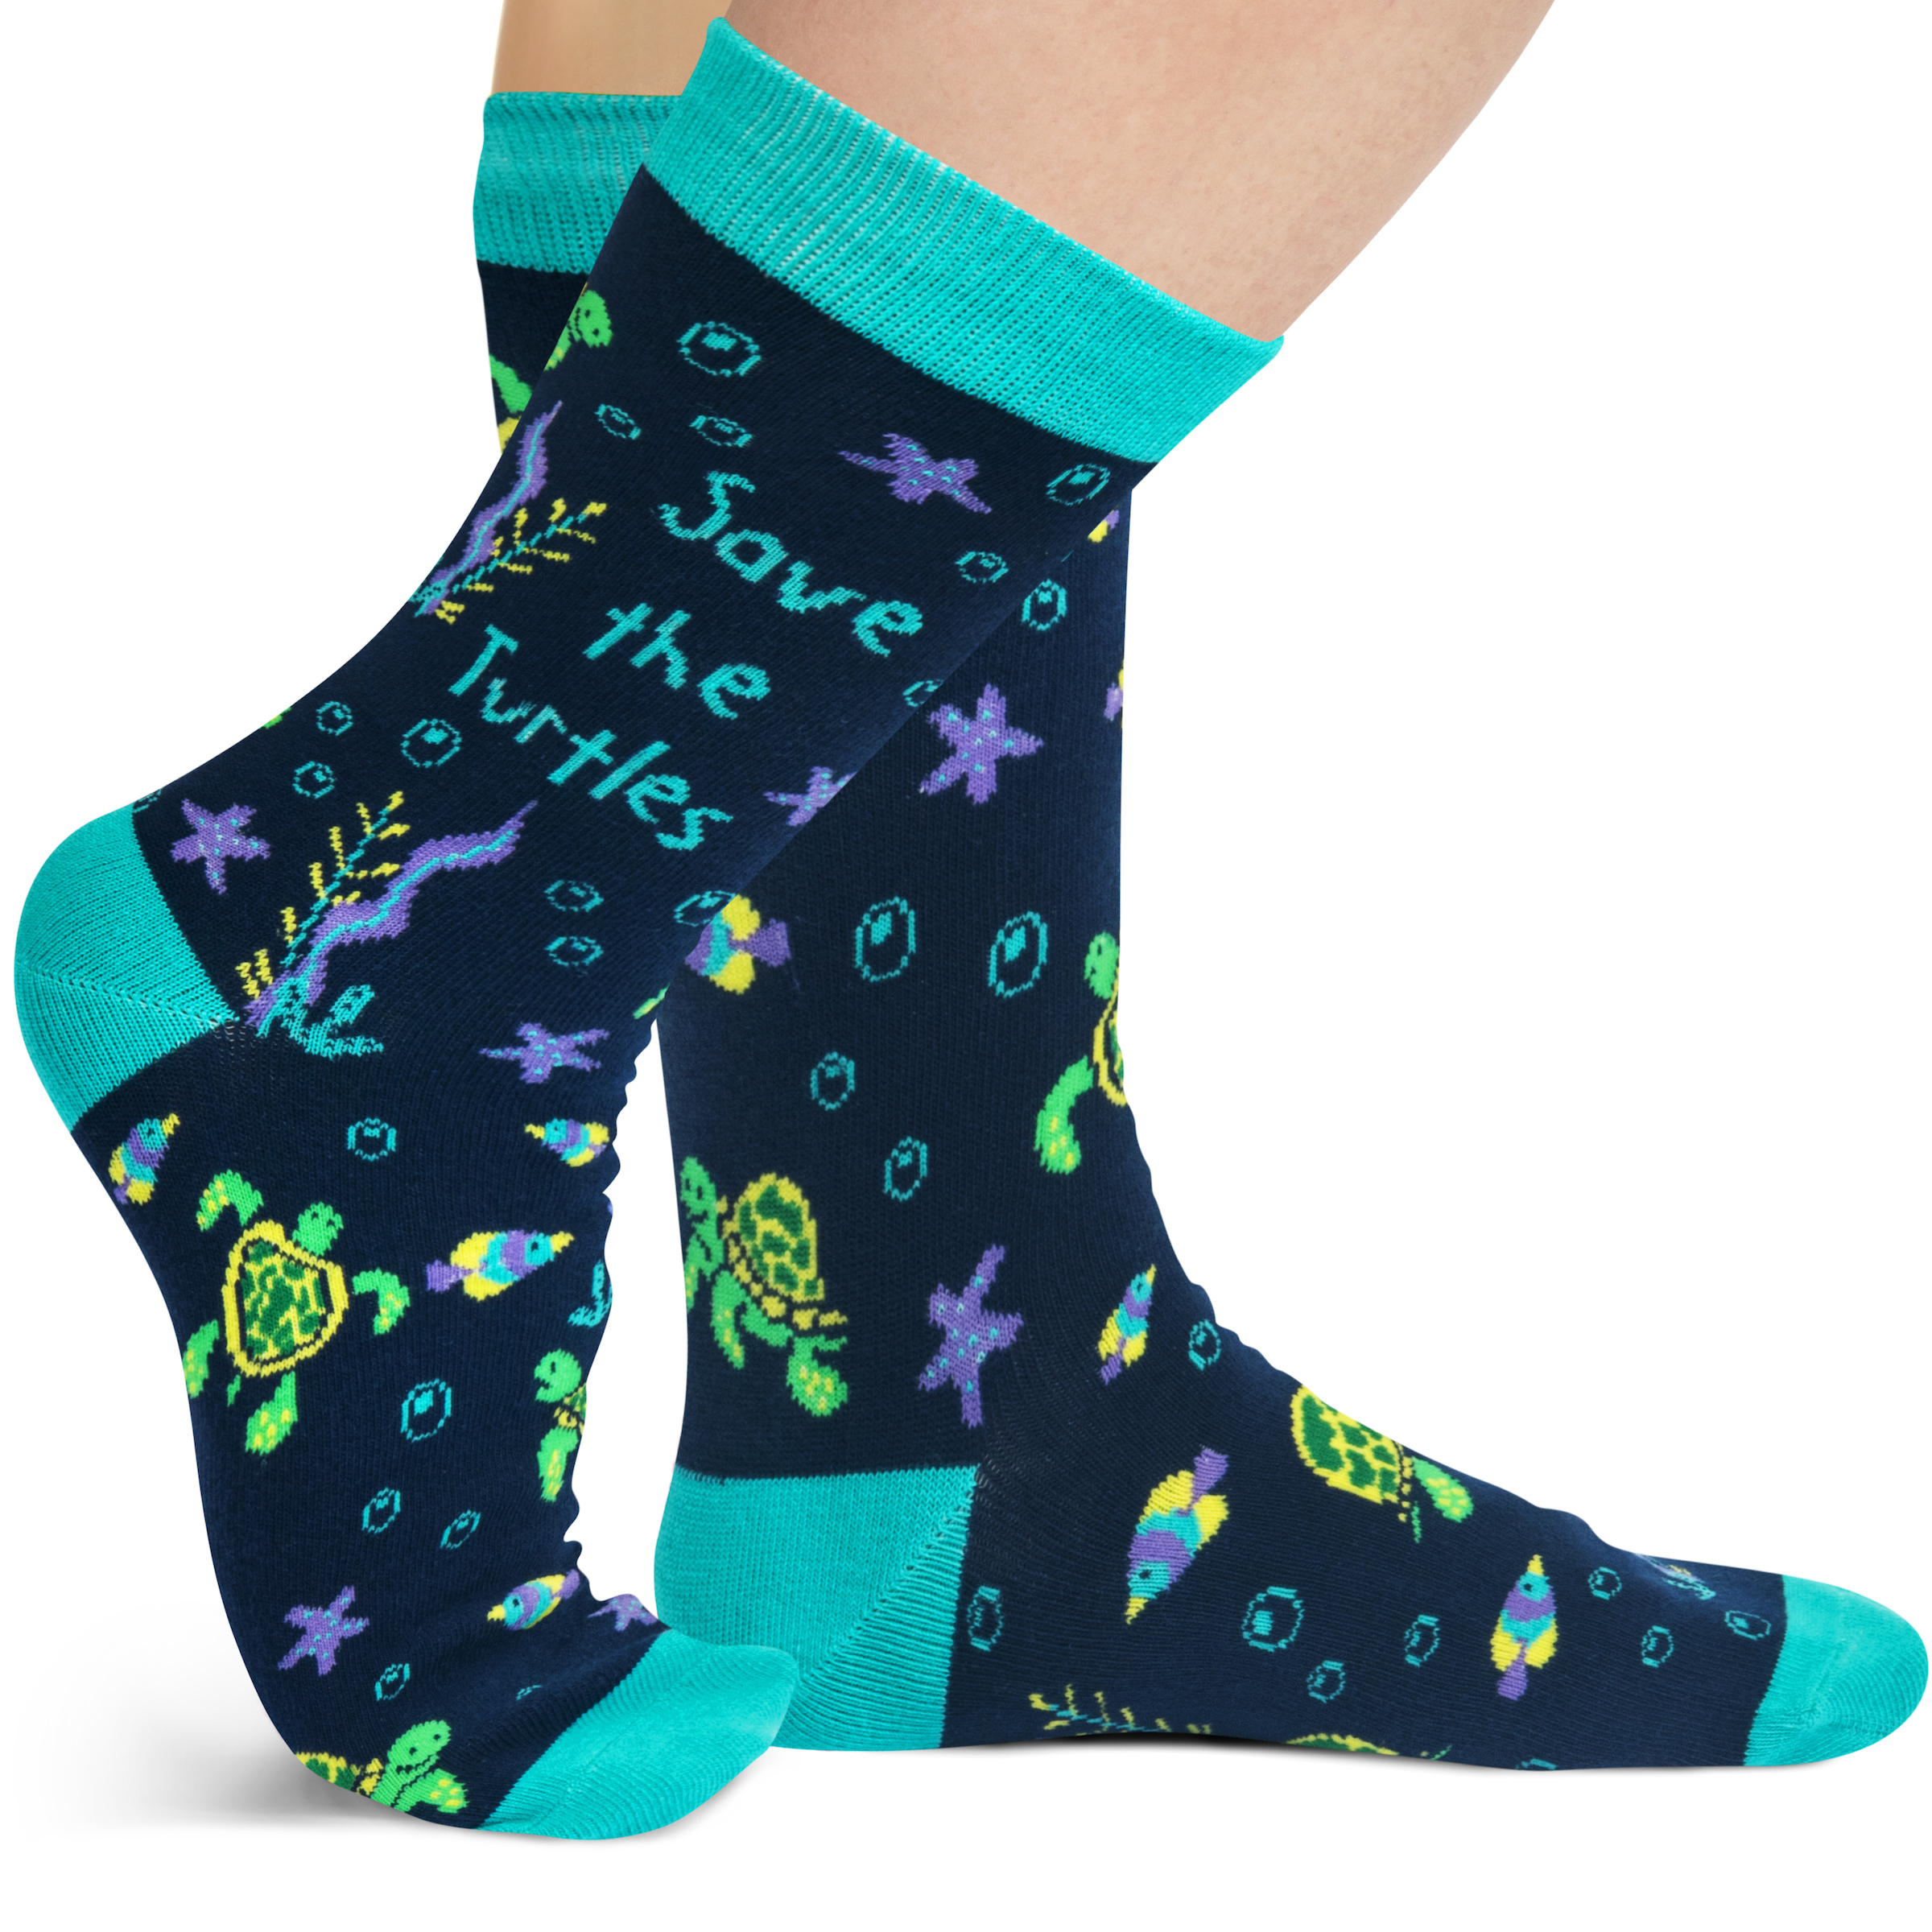 Lavley Save the turtle socks